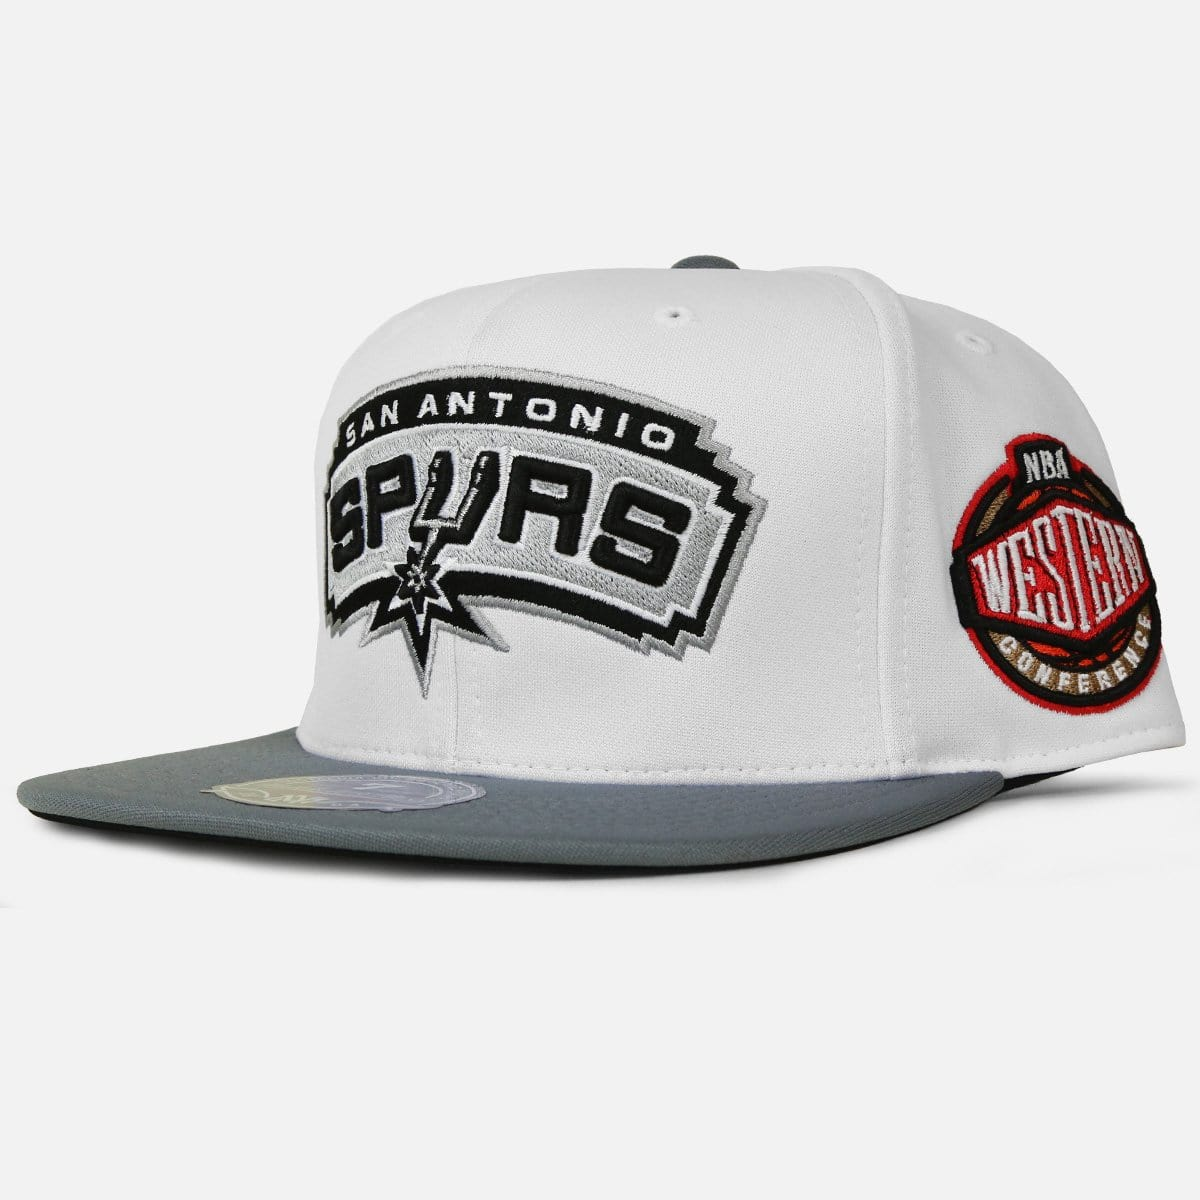 Mitchell & Ness San Antonio Spurs High Crown Fitted (White/Grey-Black)